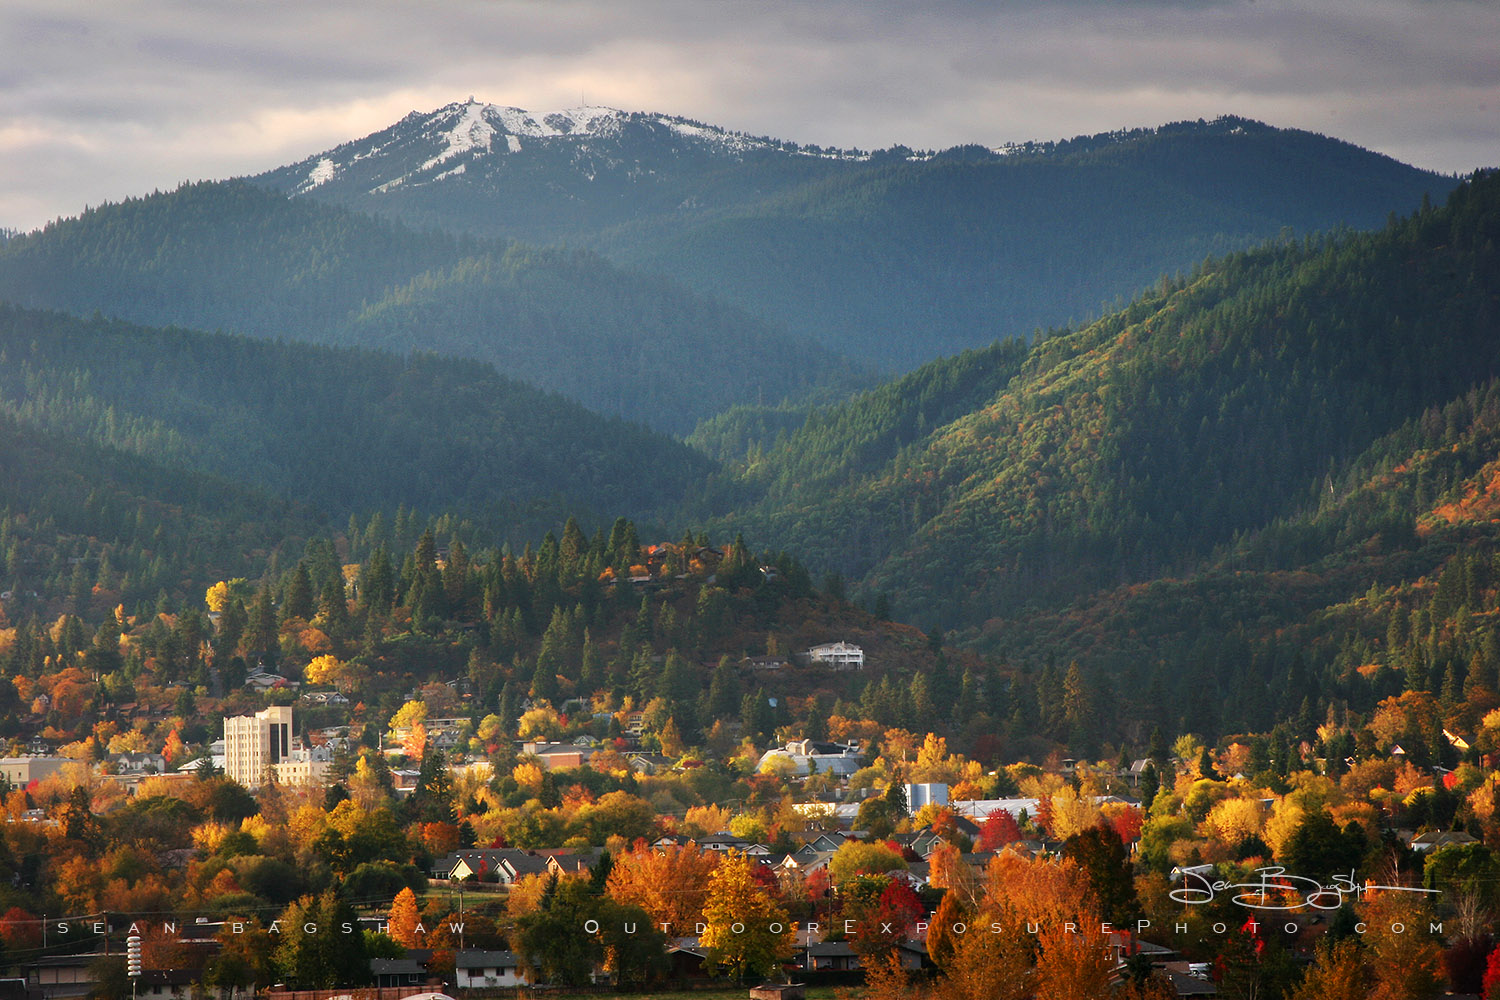 Ashland, Oregon in the fall - photography by  Sean Bagshaw  at Outdoor Exposure Photo.